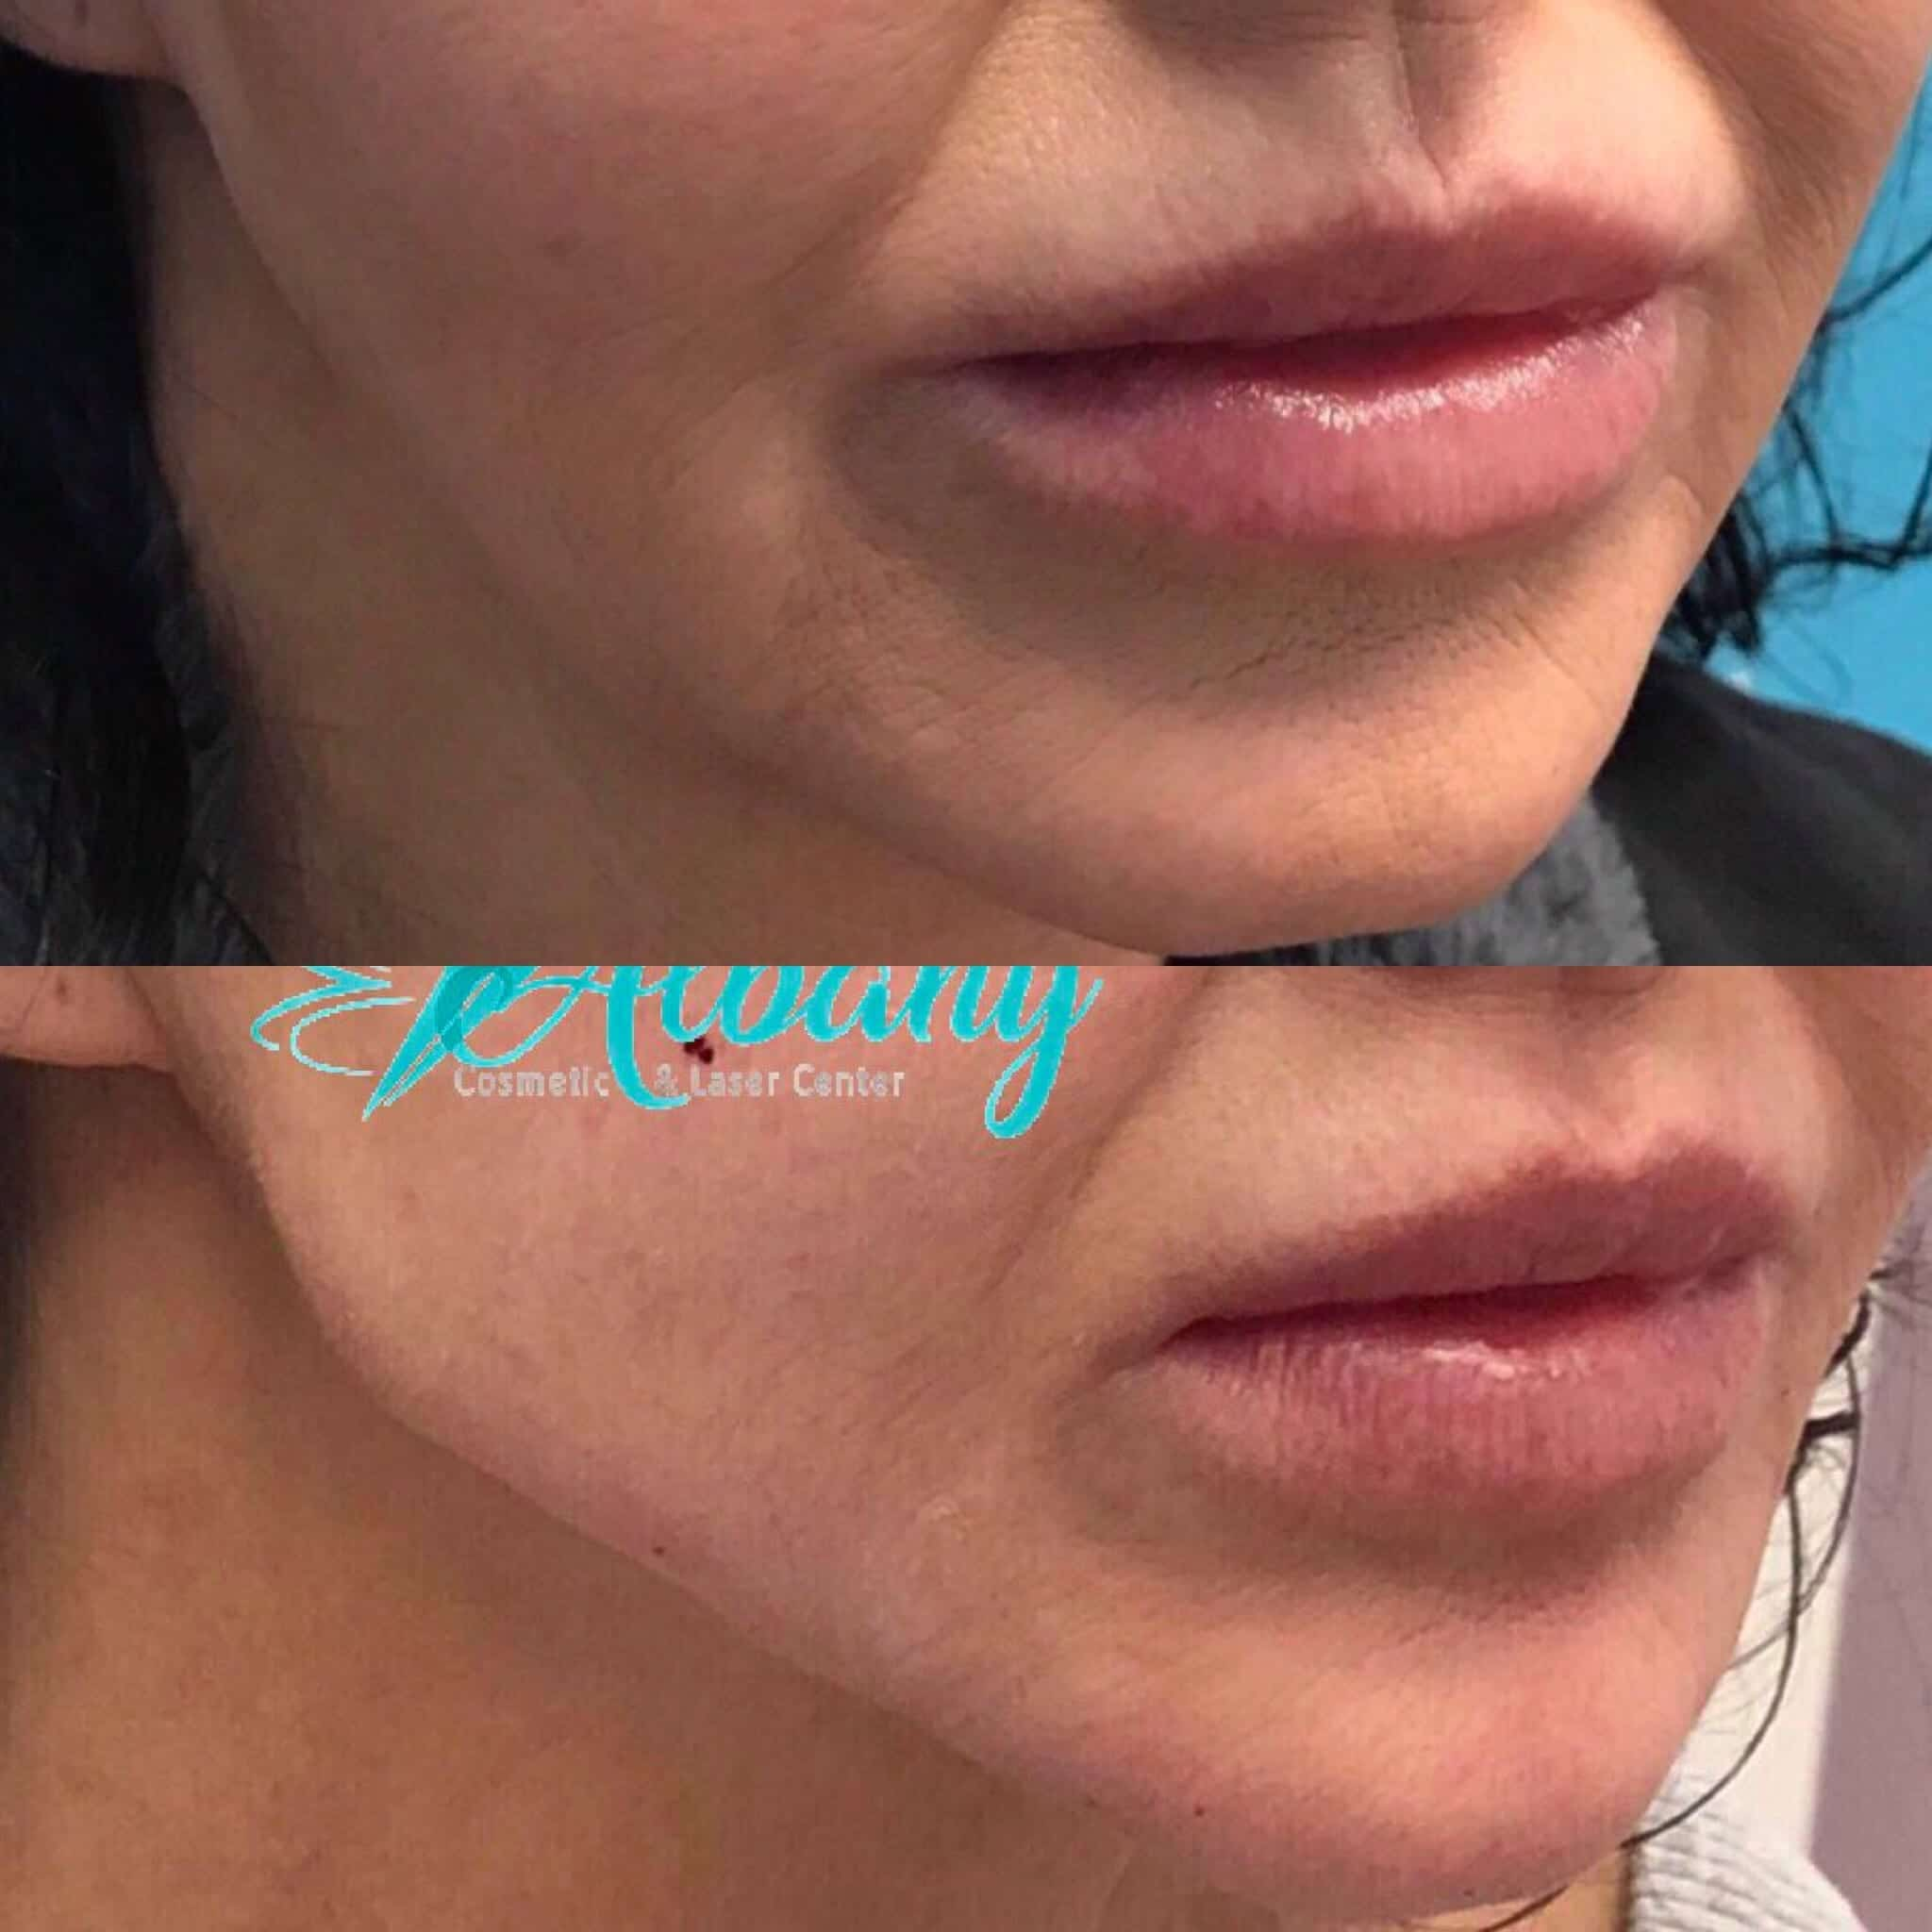 Restylane for Jawlines contouring - Jawlines contouring with